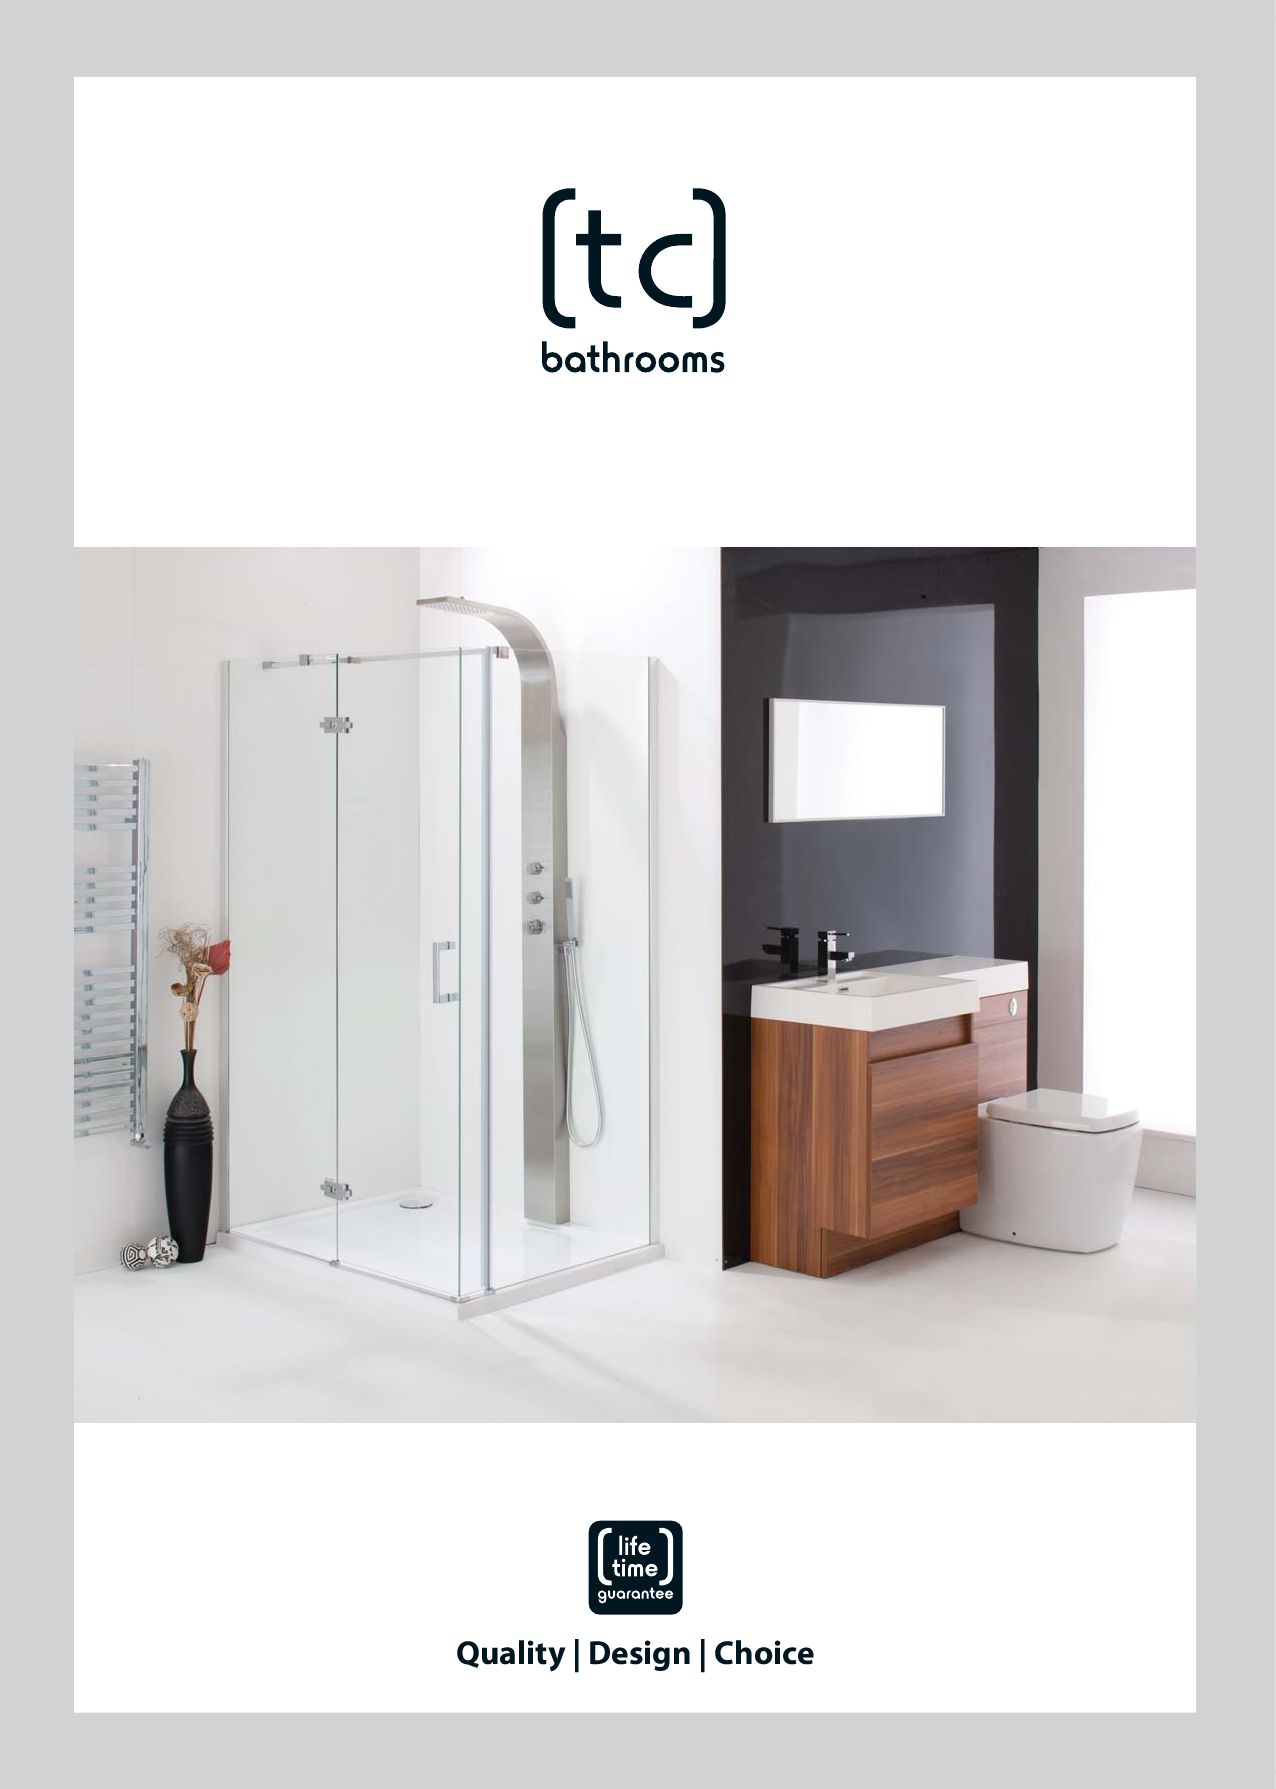 Tc bathroom brochure by graham brand issuu for Tc bathrooms